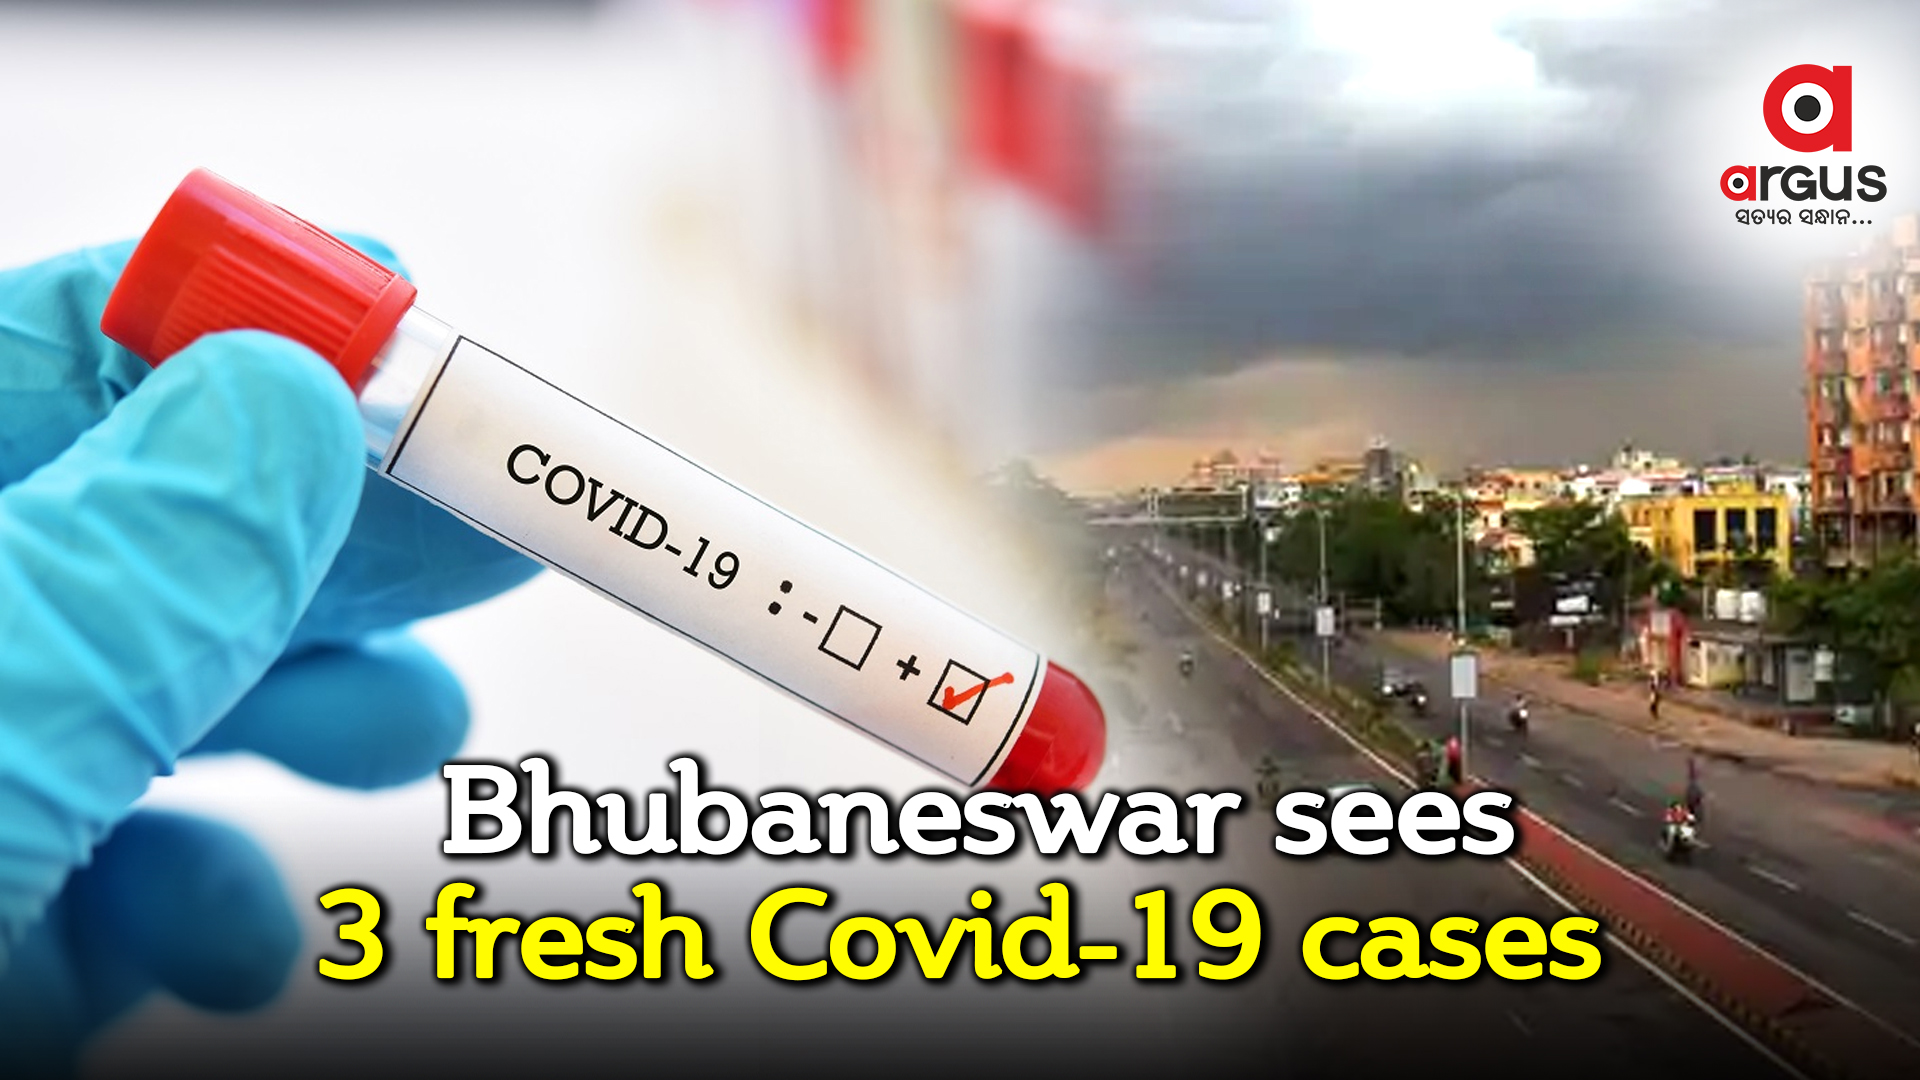 Bhubaneswar reports 3 new Covid-19 cases, 10 recoveries; Active cases stand at 115